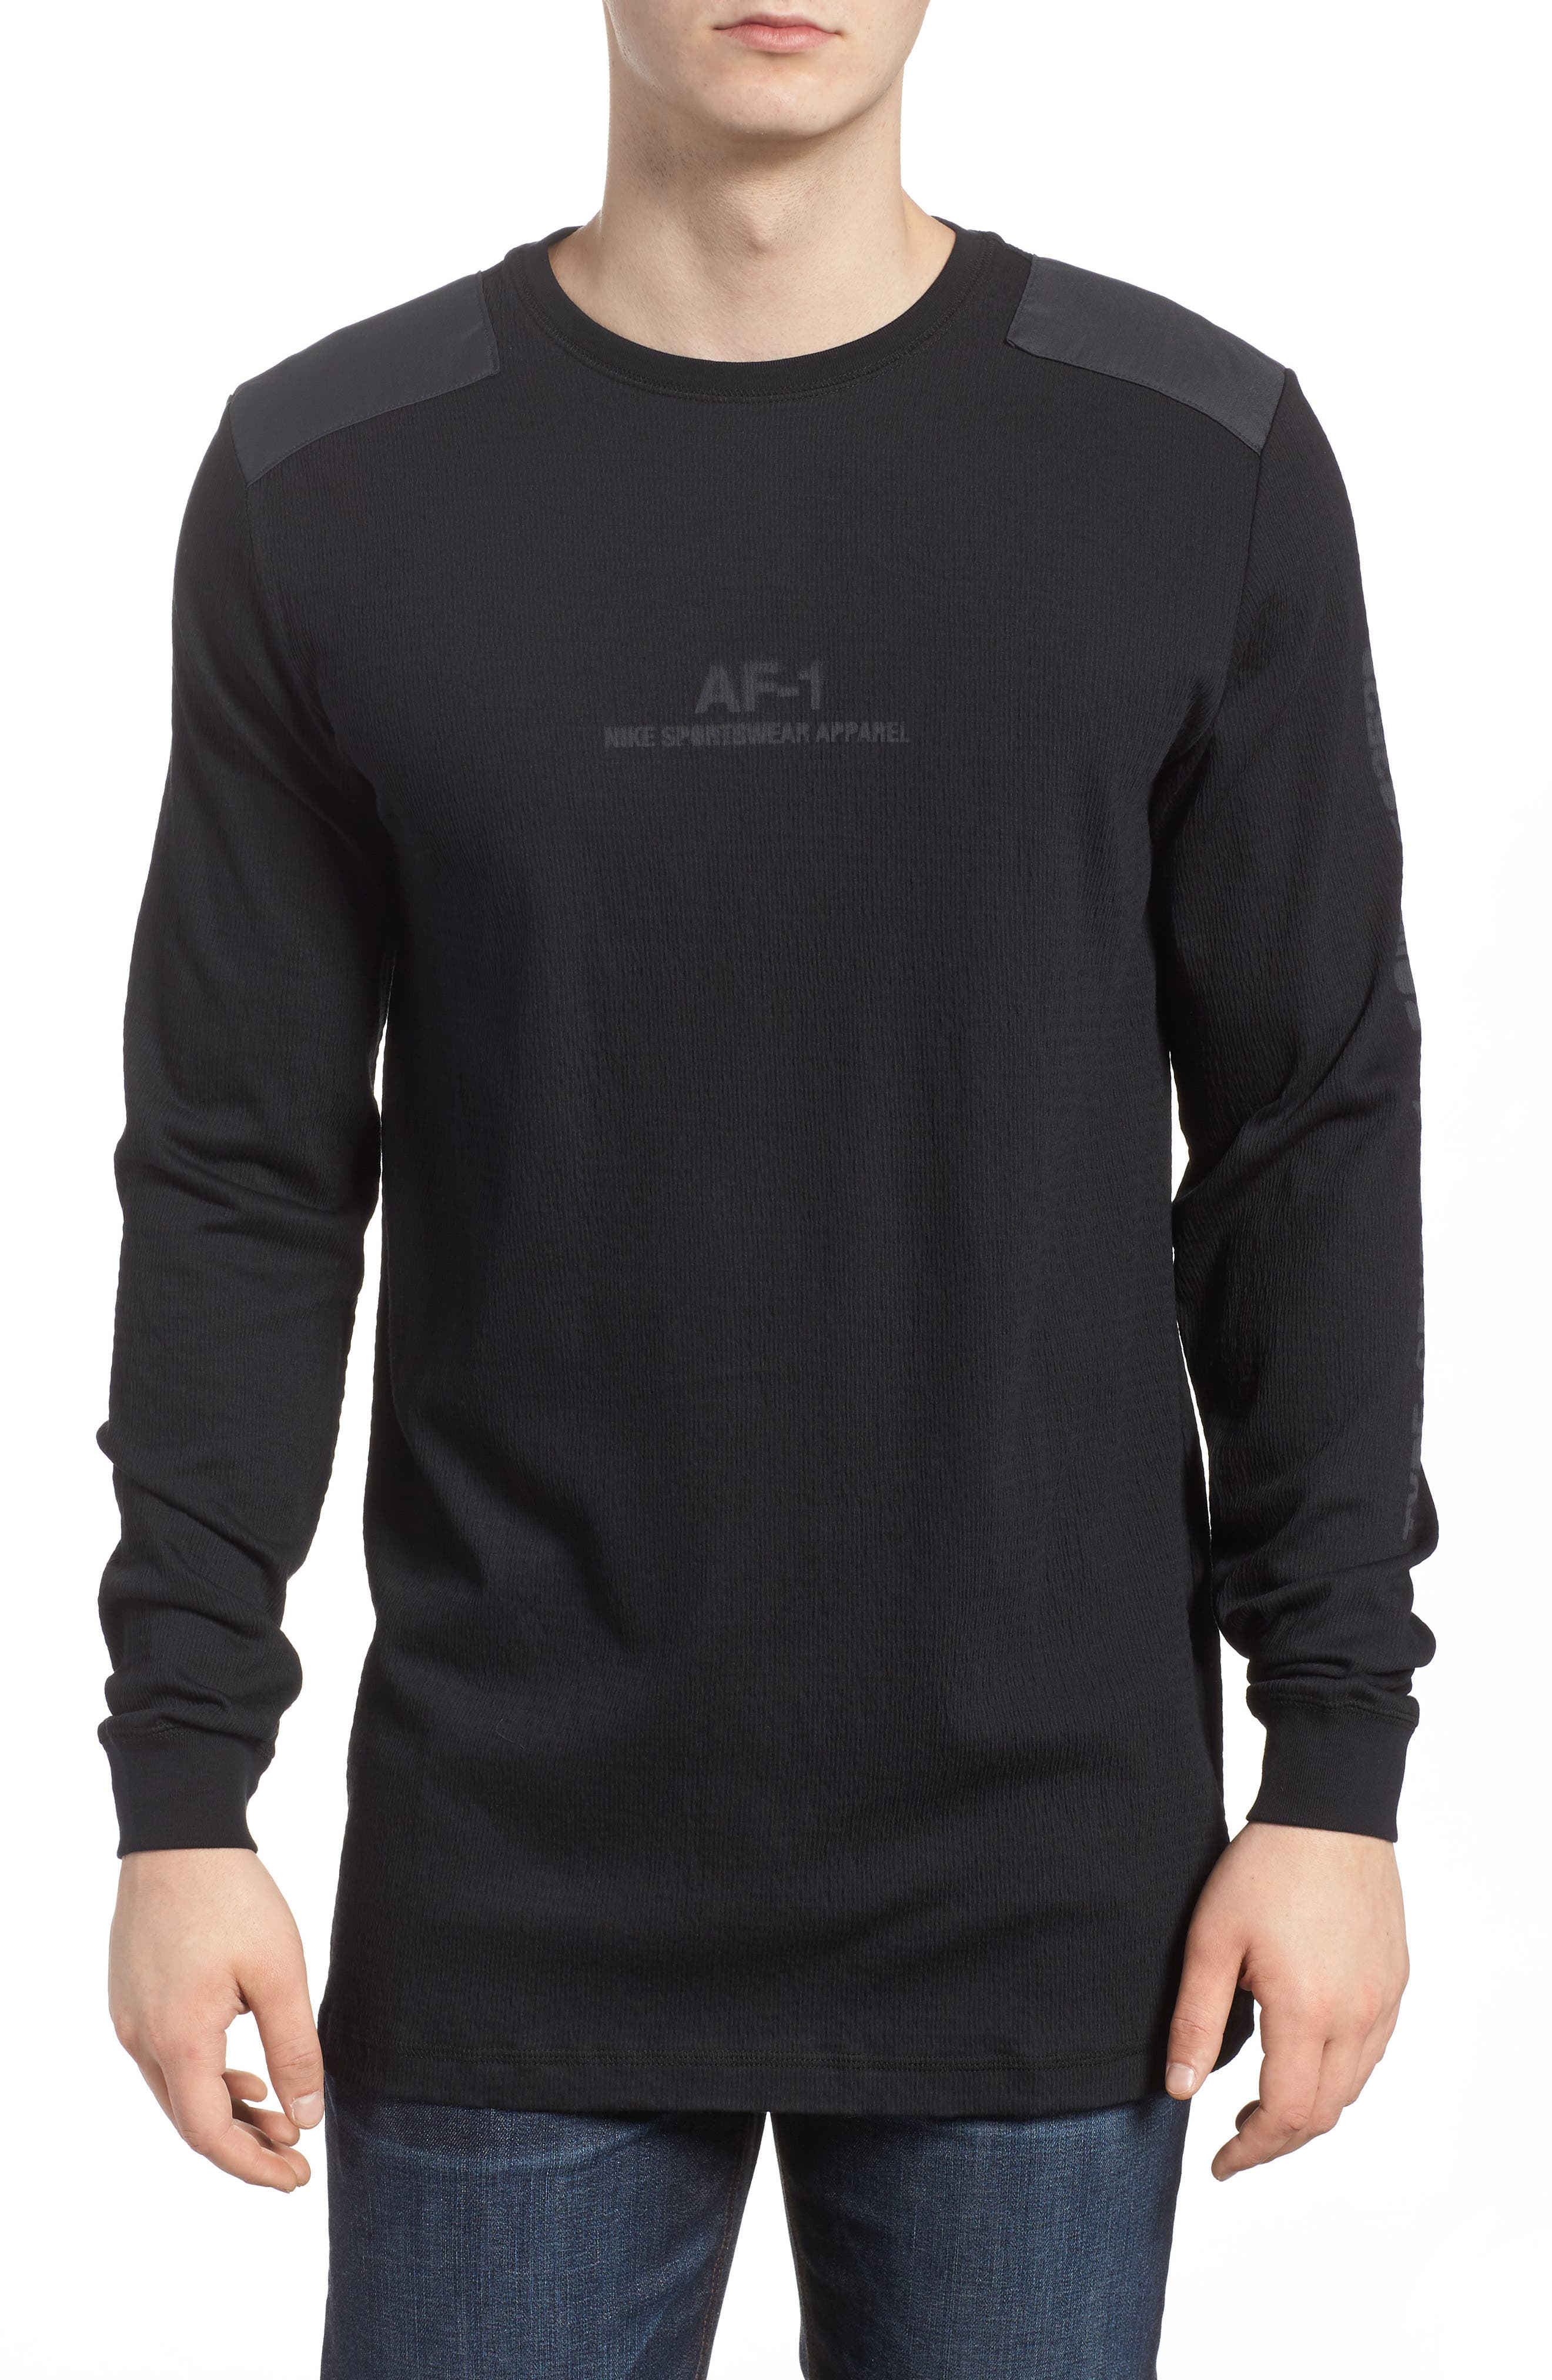 Sportswear AF-1 Long Sleeve Shirt,                         Main,                         color, 010